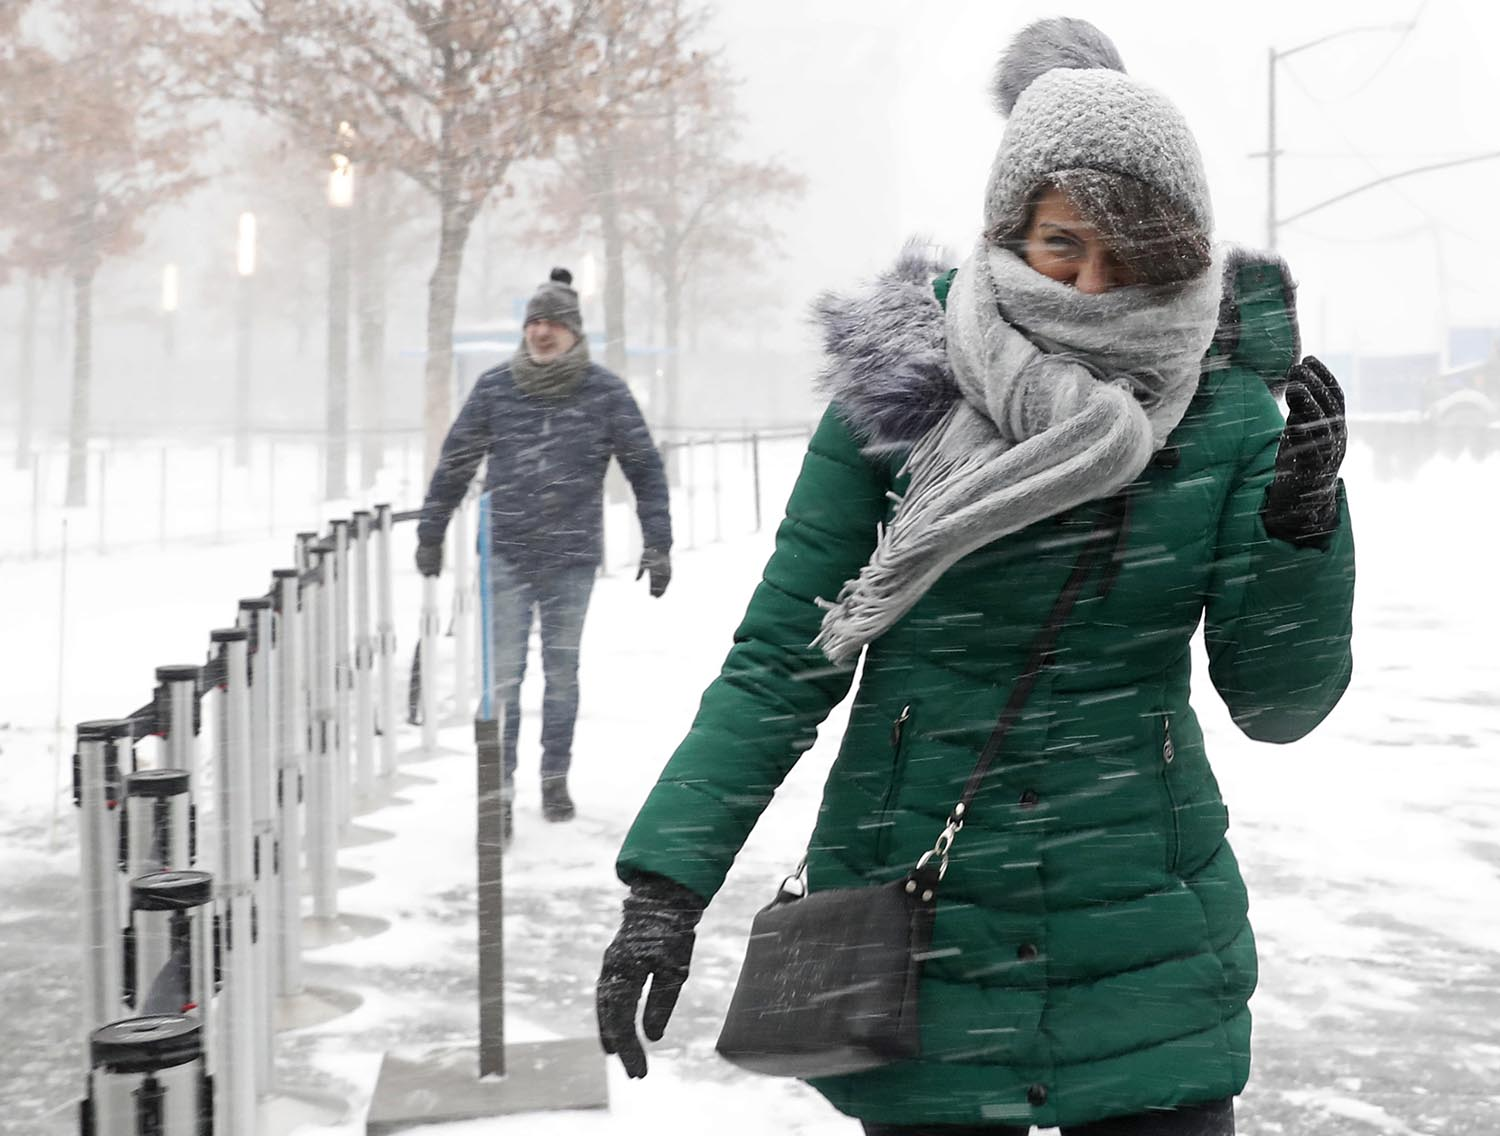 "<div class=""meta image-caption""><div class=""origin-logo origin-image ap""><span>AP</span></div><span class=""caption-text"">Pedestrians make their way across a plaza as strong winds blow the snow horizontally outside the National September 11 Memorial and Museum in New York, Thursday, Jan. 4, 2018. (AP Photo/Kathy Willens)</span></div>"